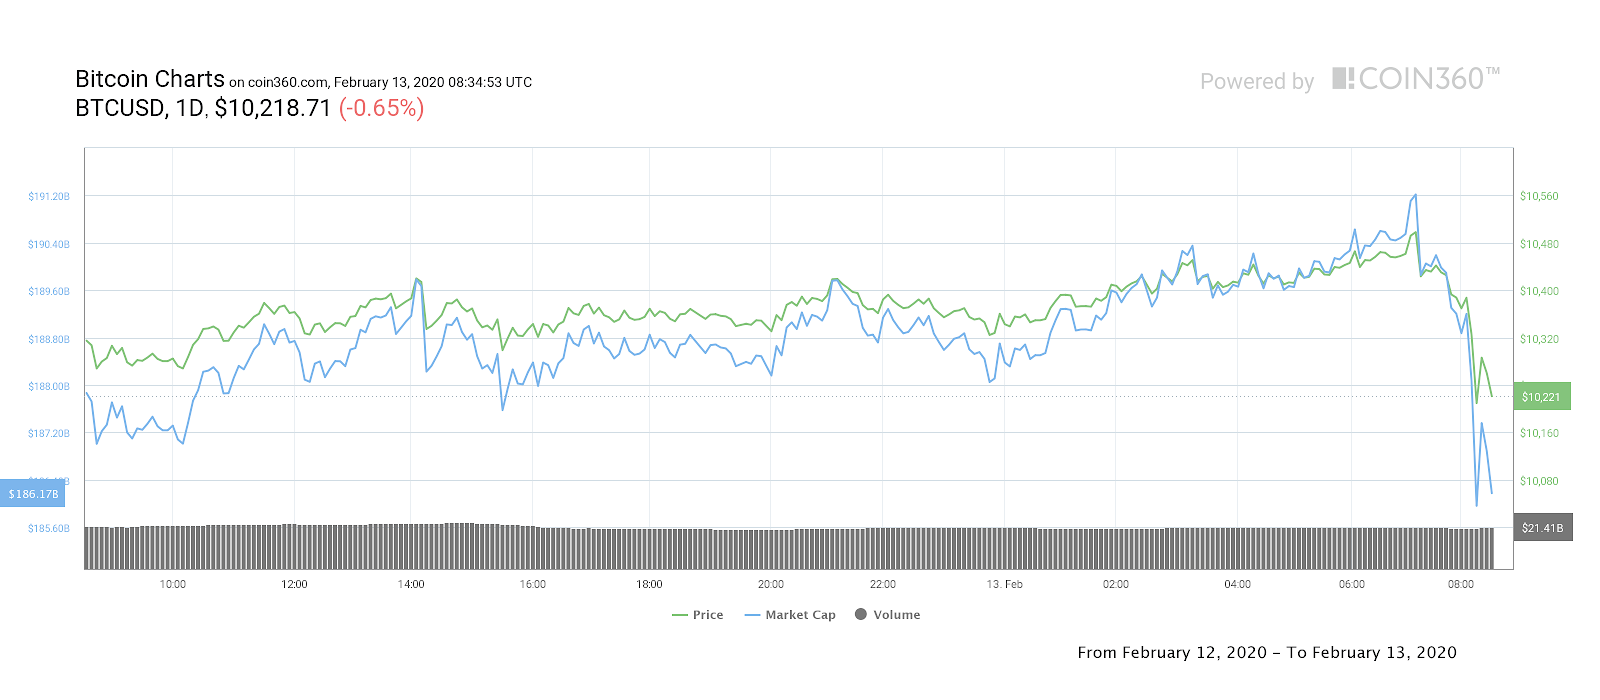 7b07378ce6b305d486400dc94e9f1166 - Bitcoin Price Suddenly Drops $300 in 1 Hour After $10,500 Rejection